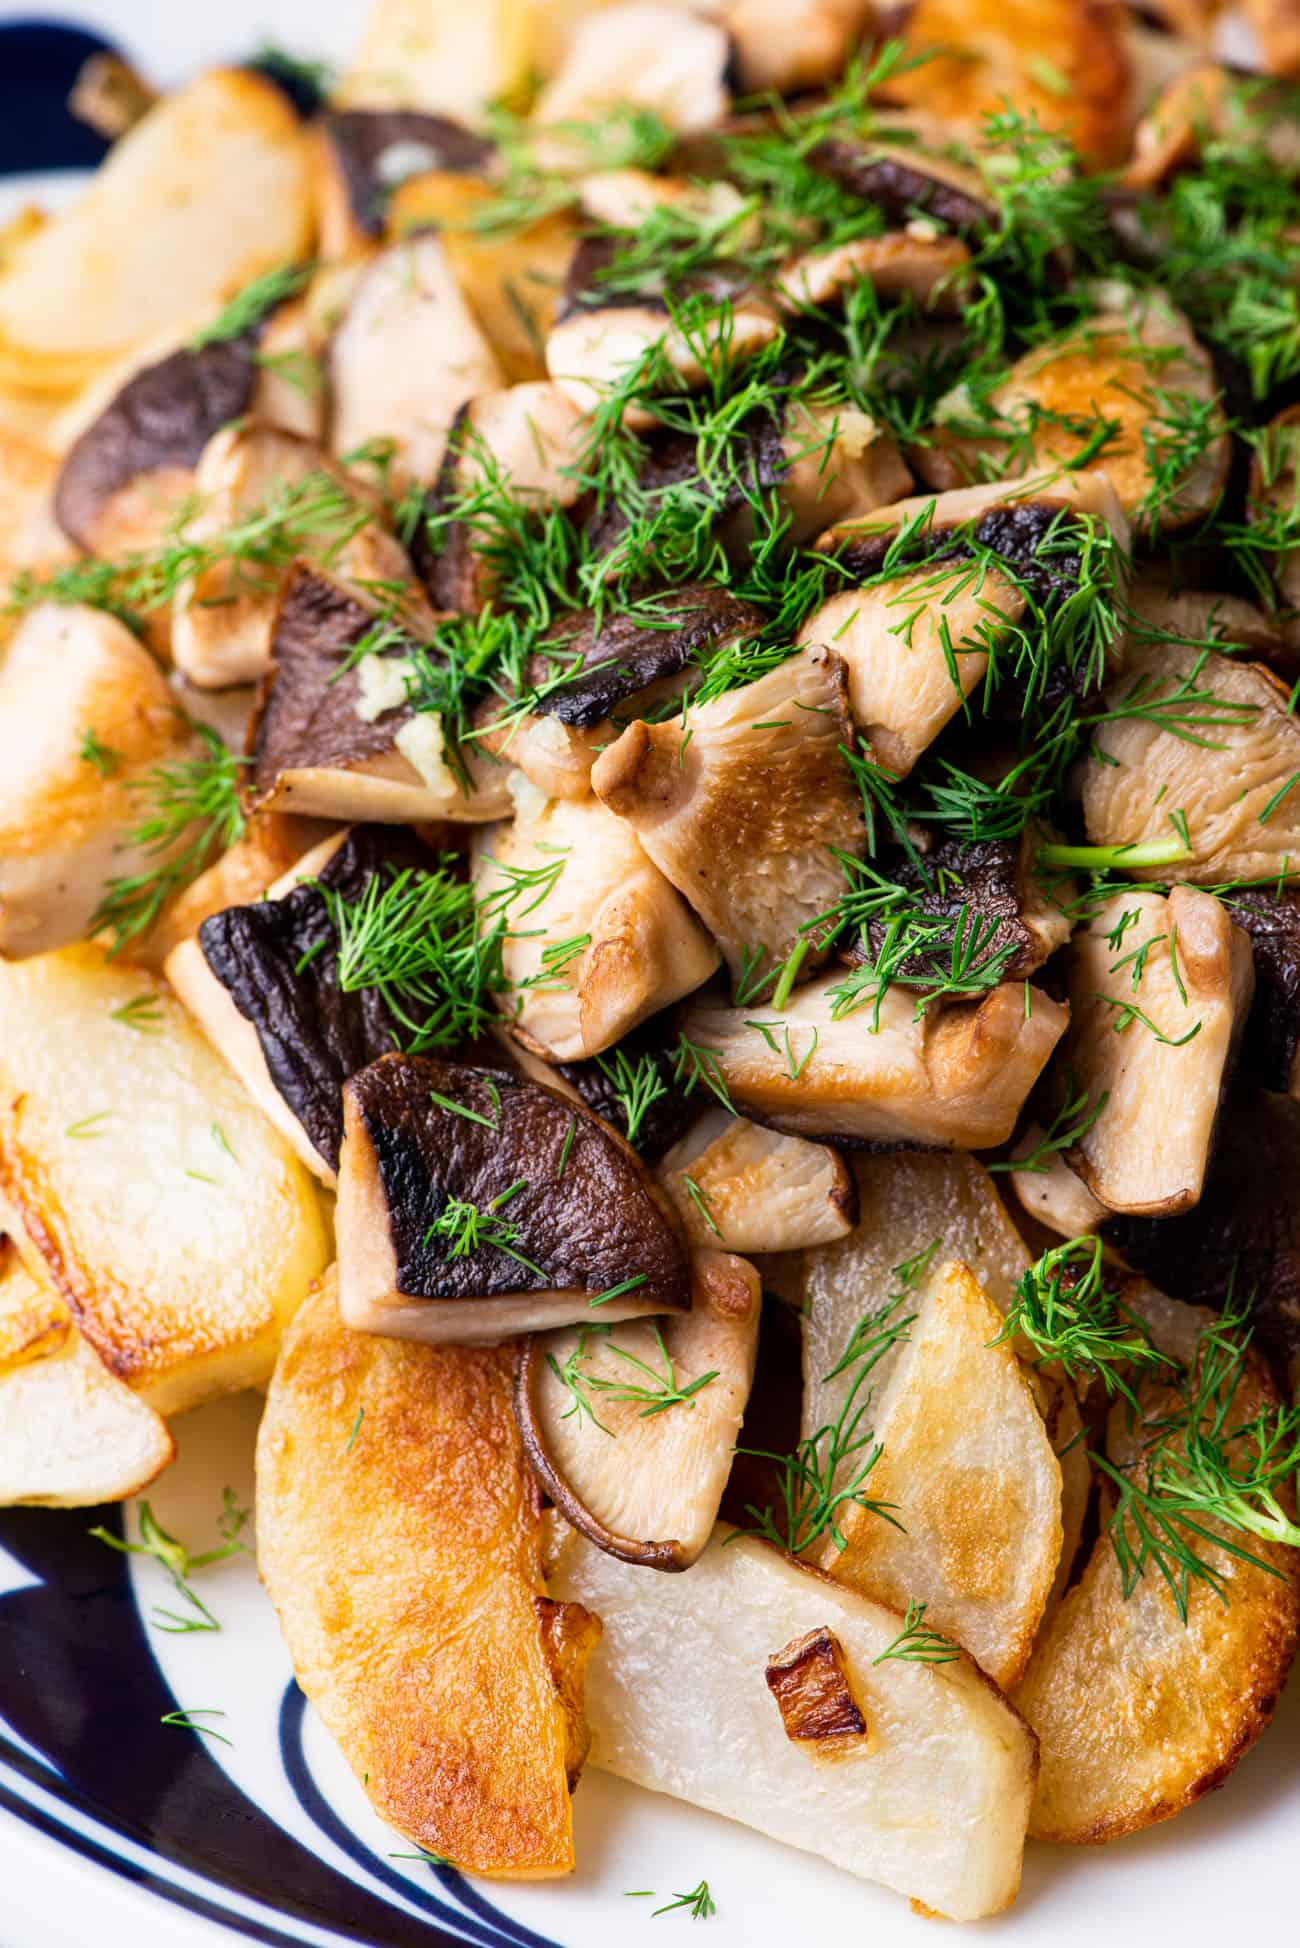 Close-up of Russian fried potatoes with shiitake mushrooms and dill